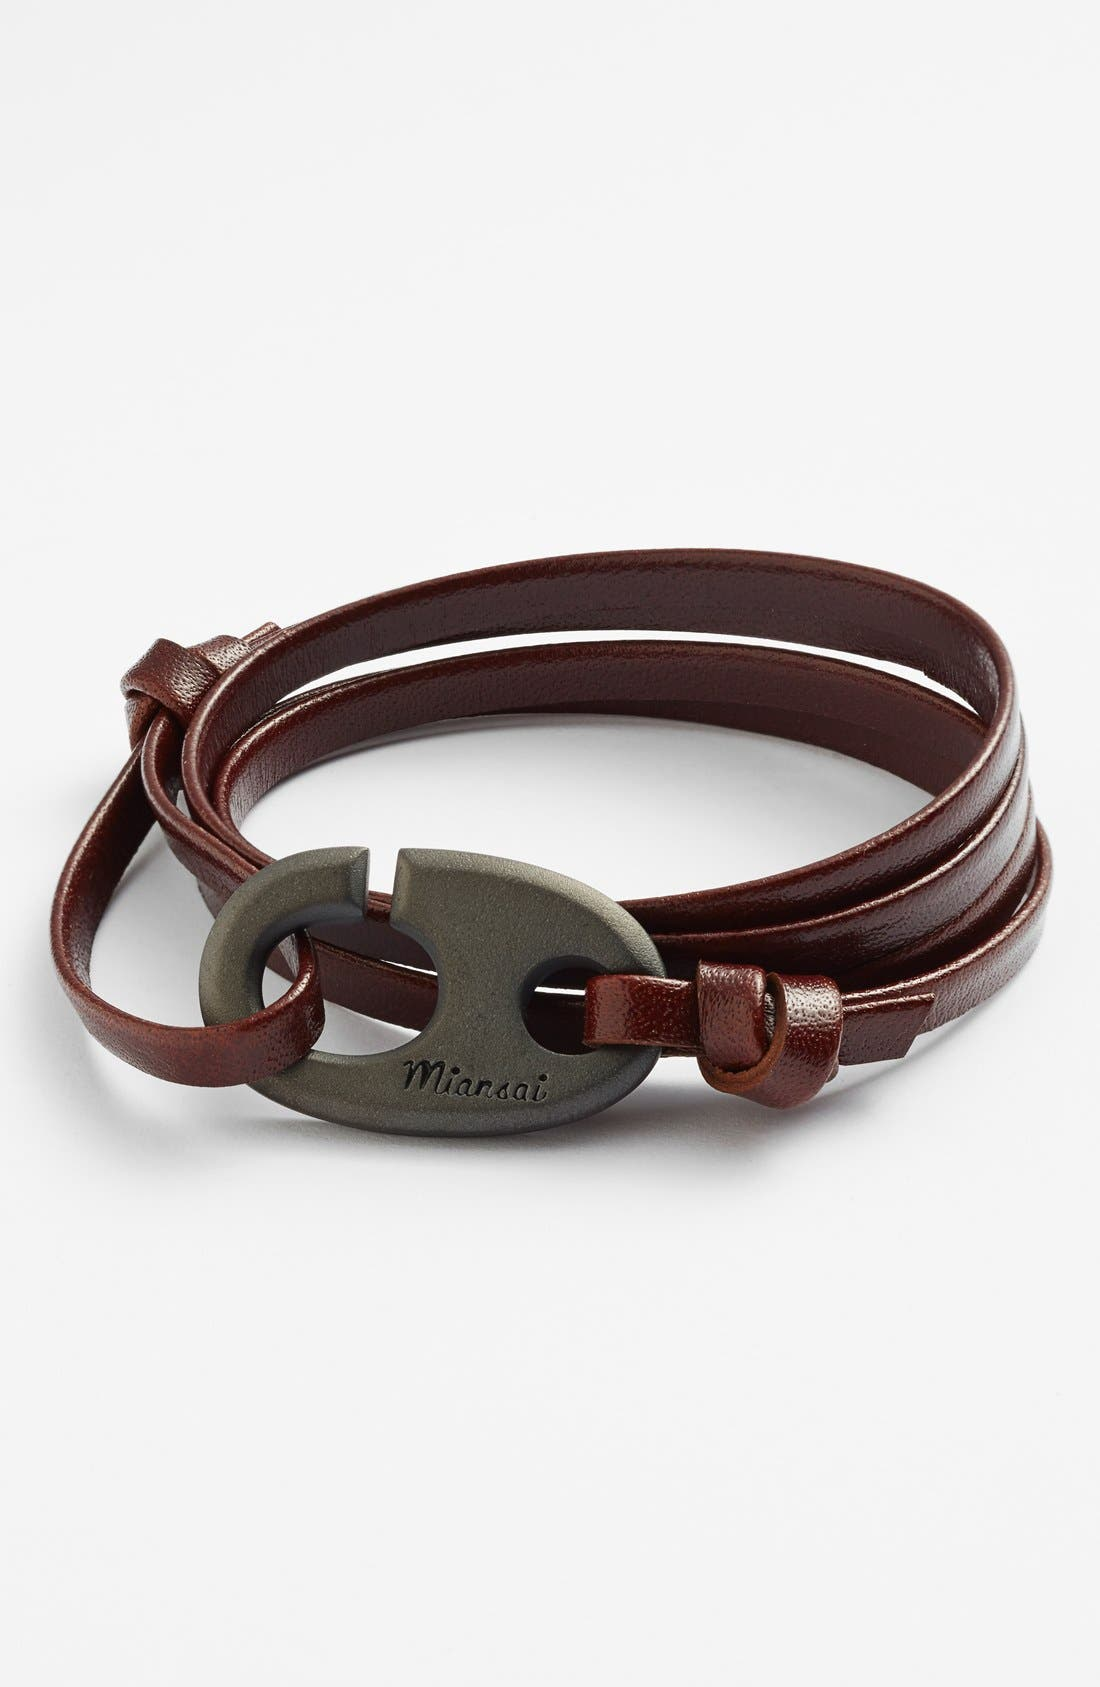 Main Image - Miansai Brummel Hook Leather Bracelet